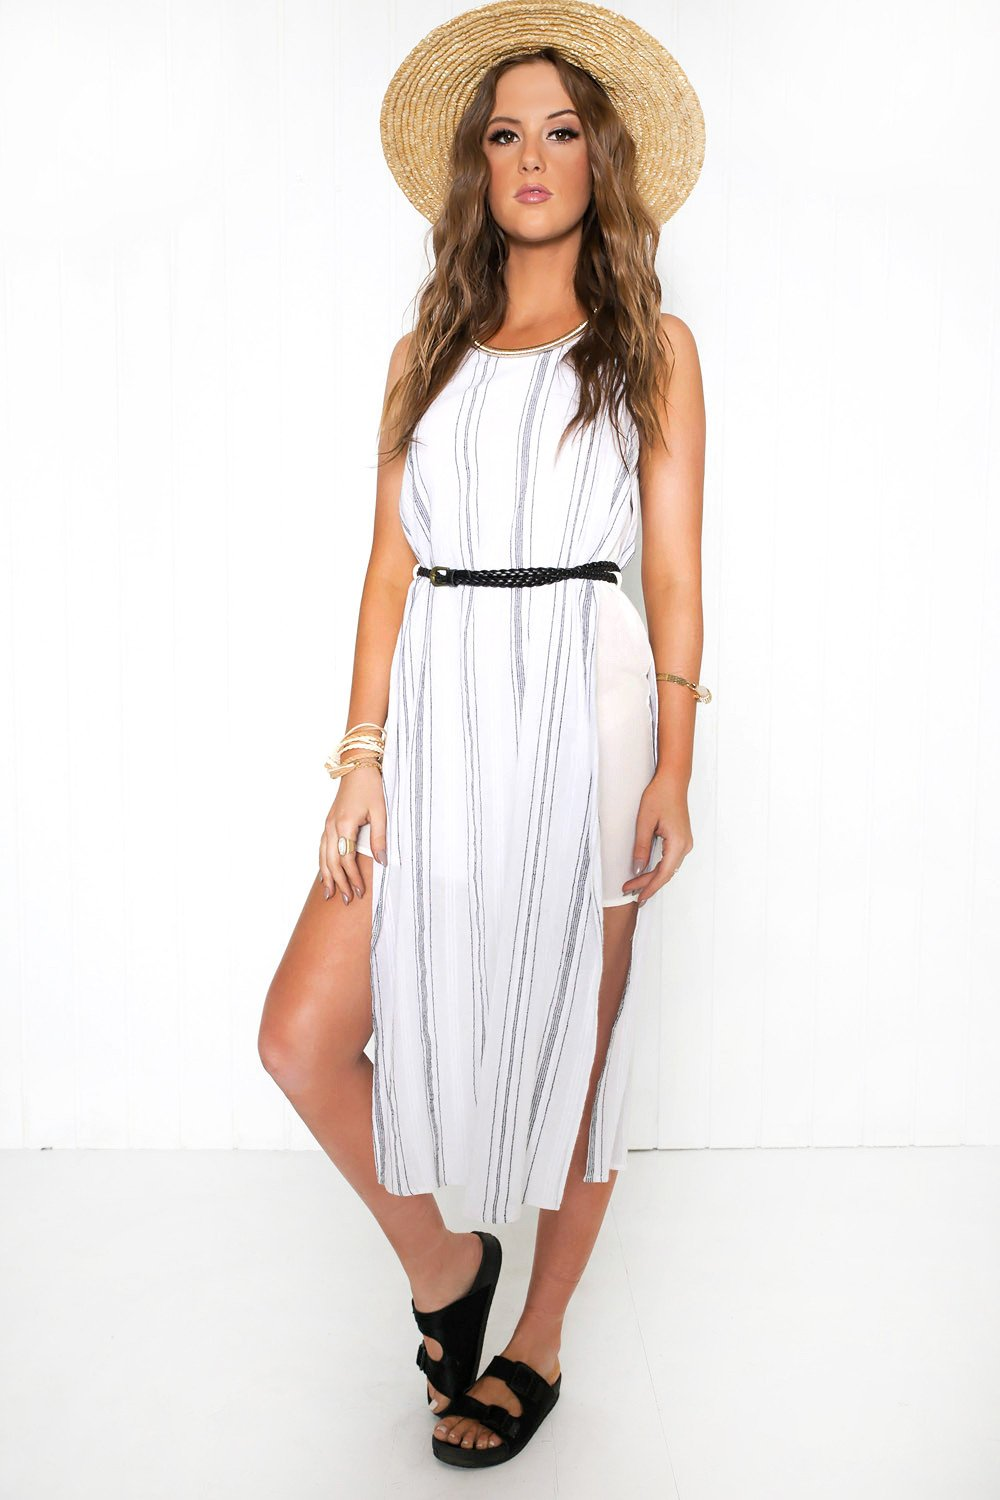 Go Tropic Natural Belted Dress - Haute & Rebellious